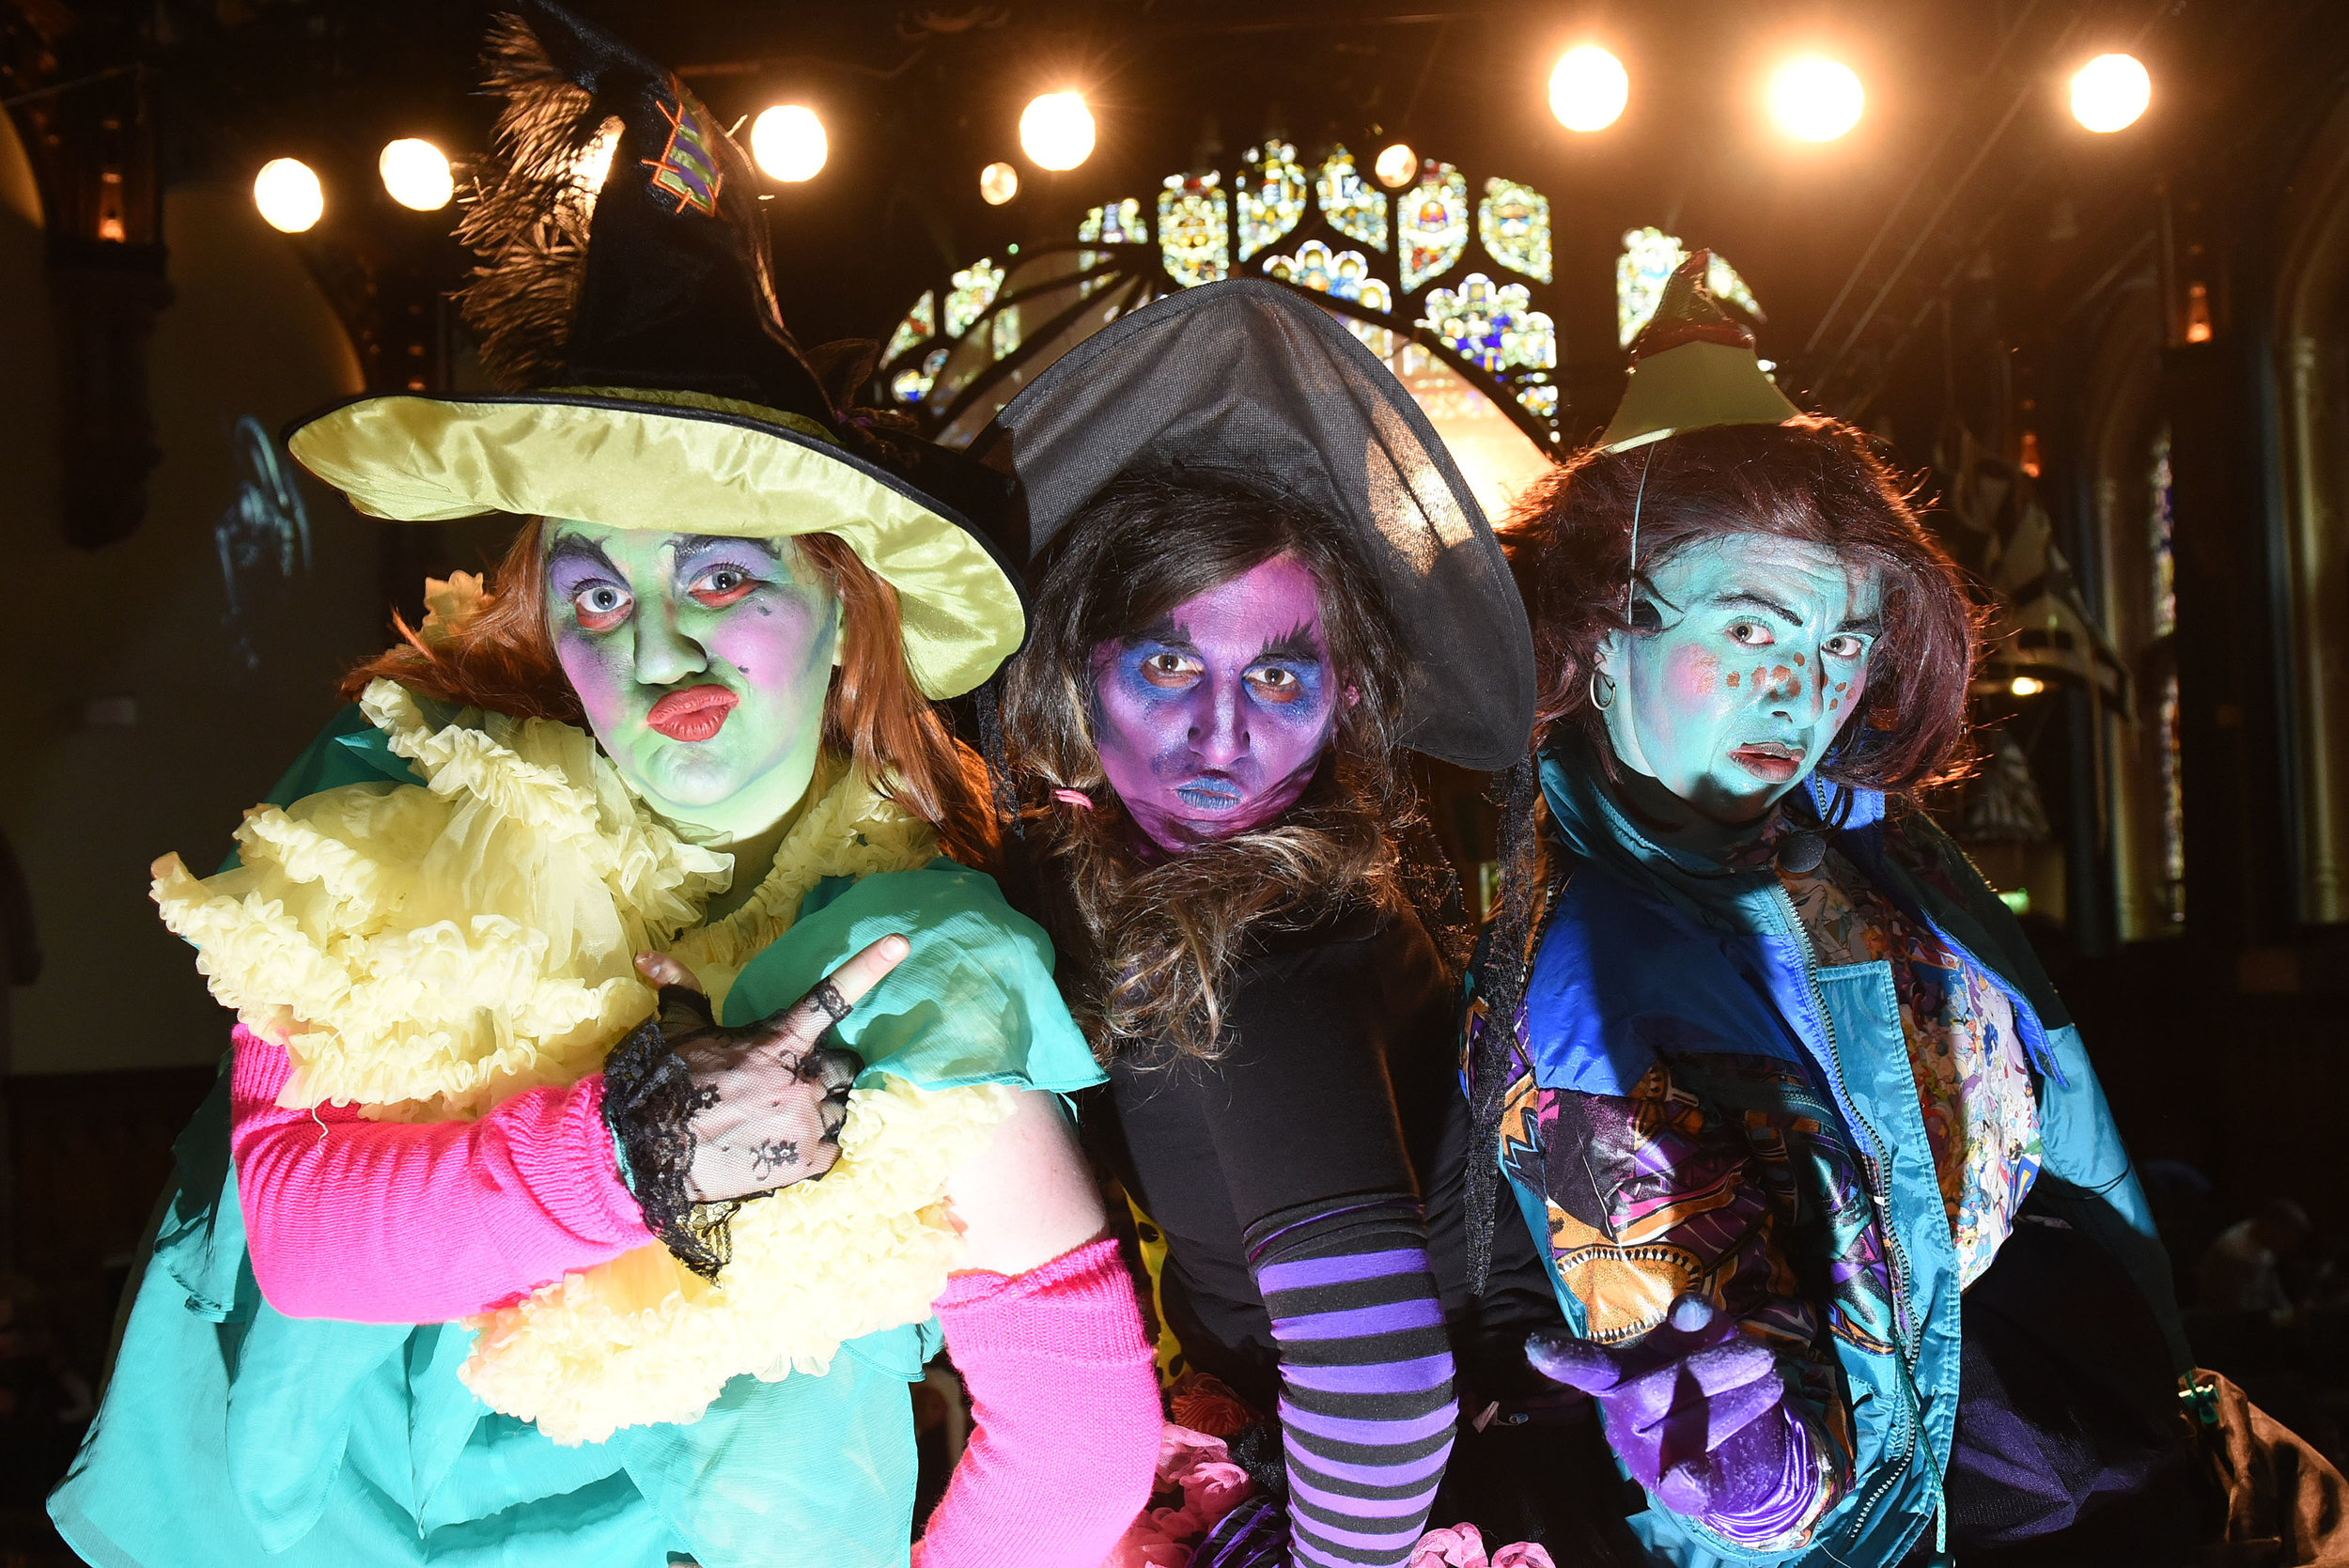 The Derry Halloween Festival with Fireworks by Star Fireworks was a huge success.